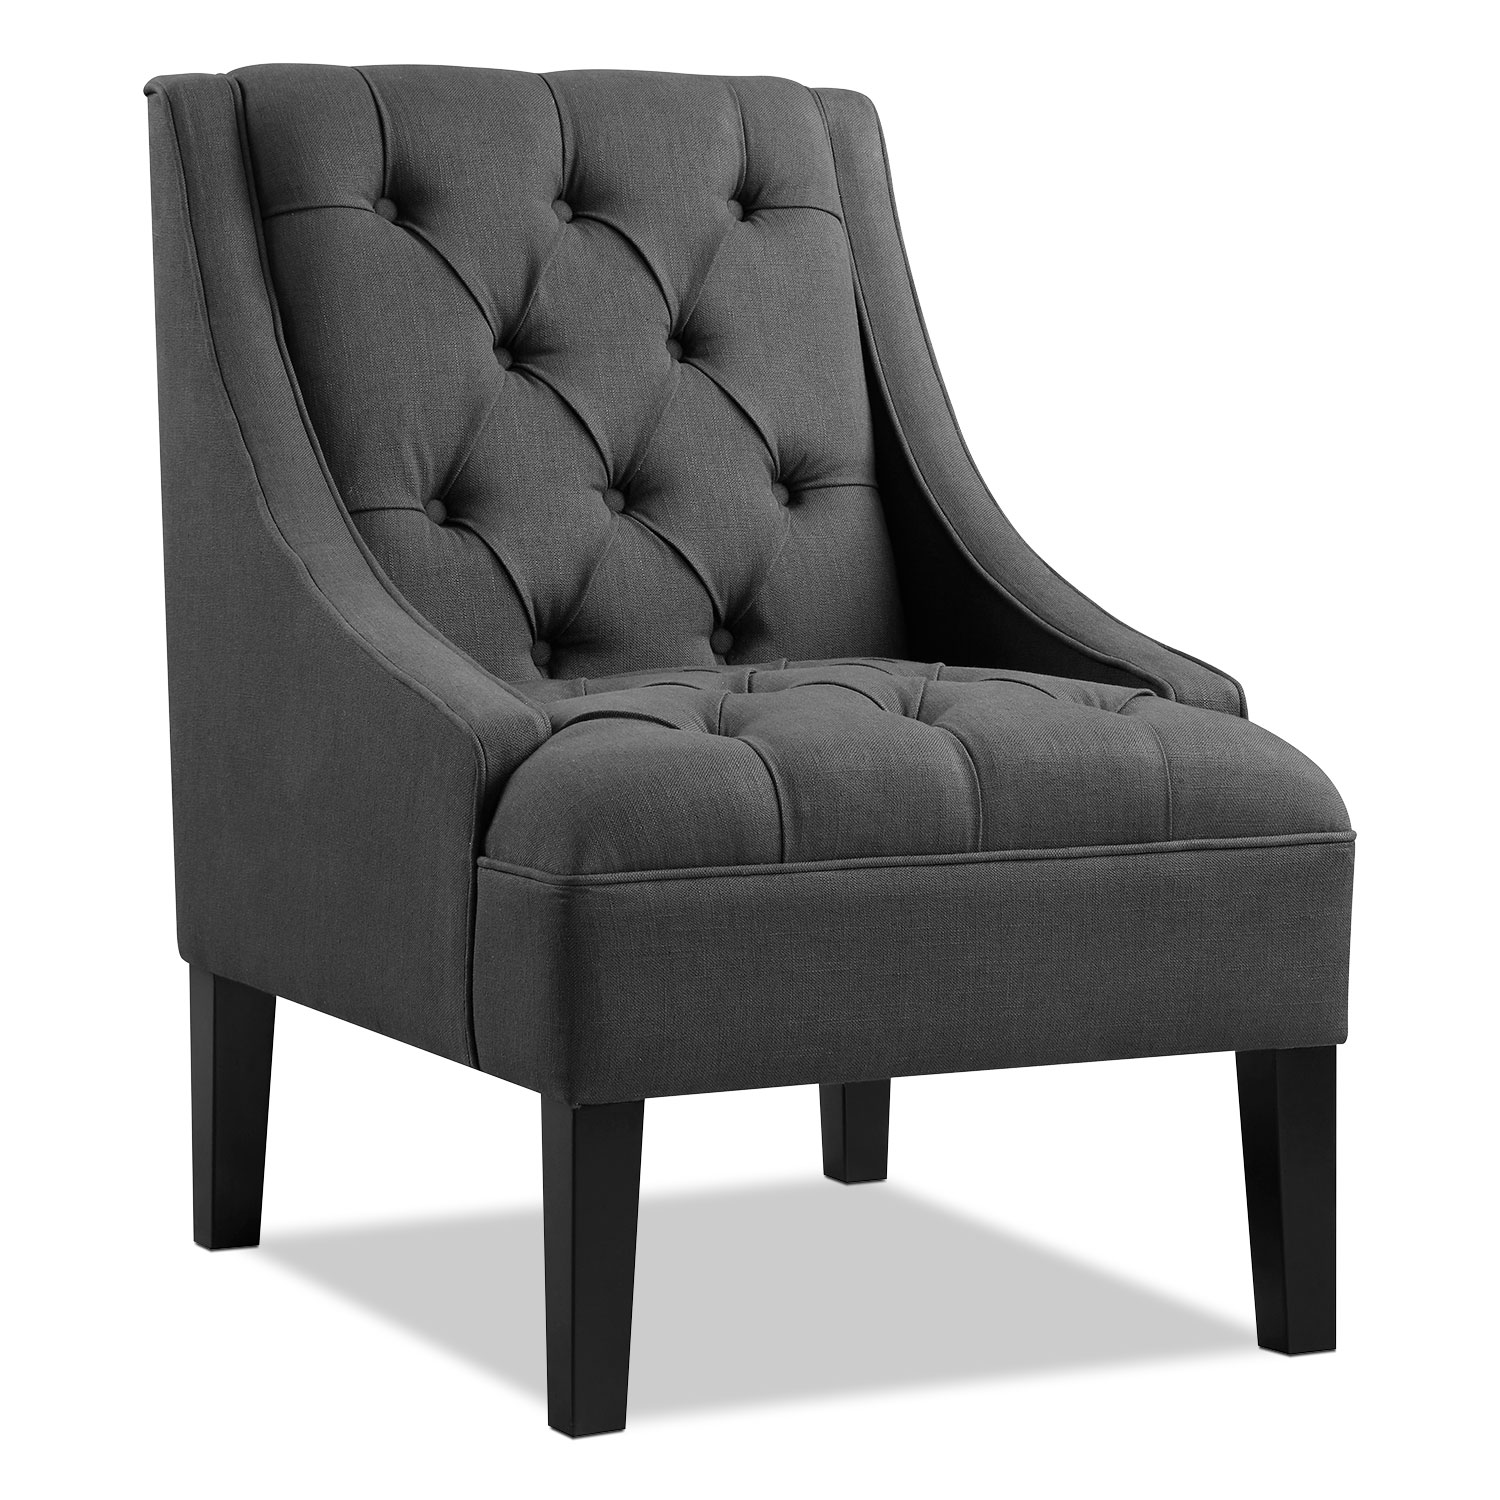 Surprising Greylin Accent Chair Caraccident5 Cool Chair Designs And Ideas Caraccident5Info